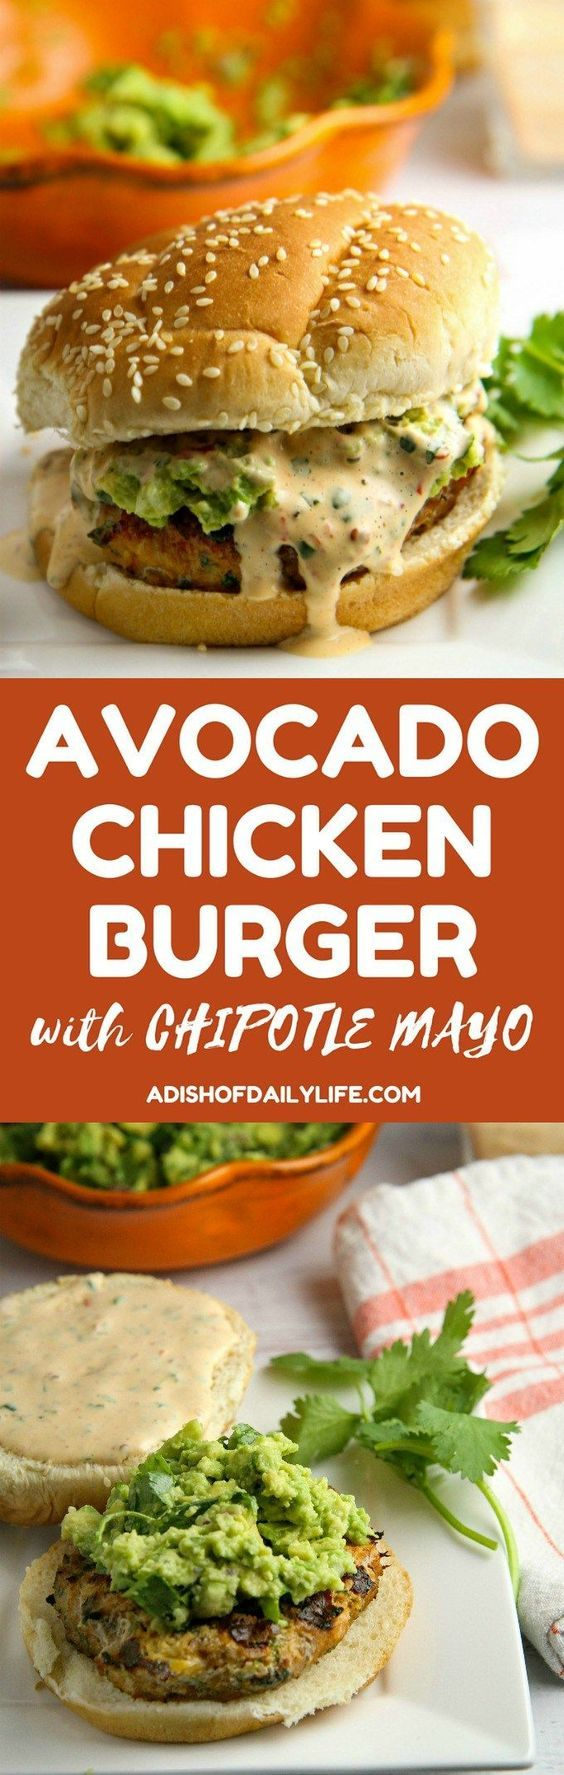 Add a TexMex flair to your next summer BBQ! This Chicken Burger is LOADED with flavor grilled to perfection piled high with smashed avocado and smothered in chipotle mayo...perfect recipe for the grilling season!